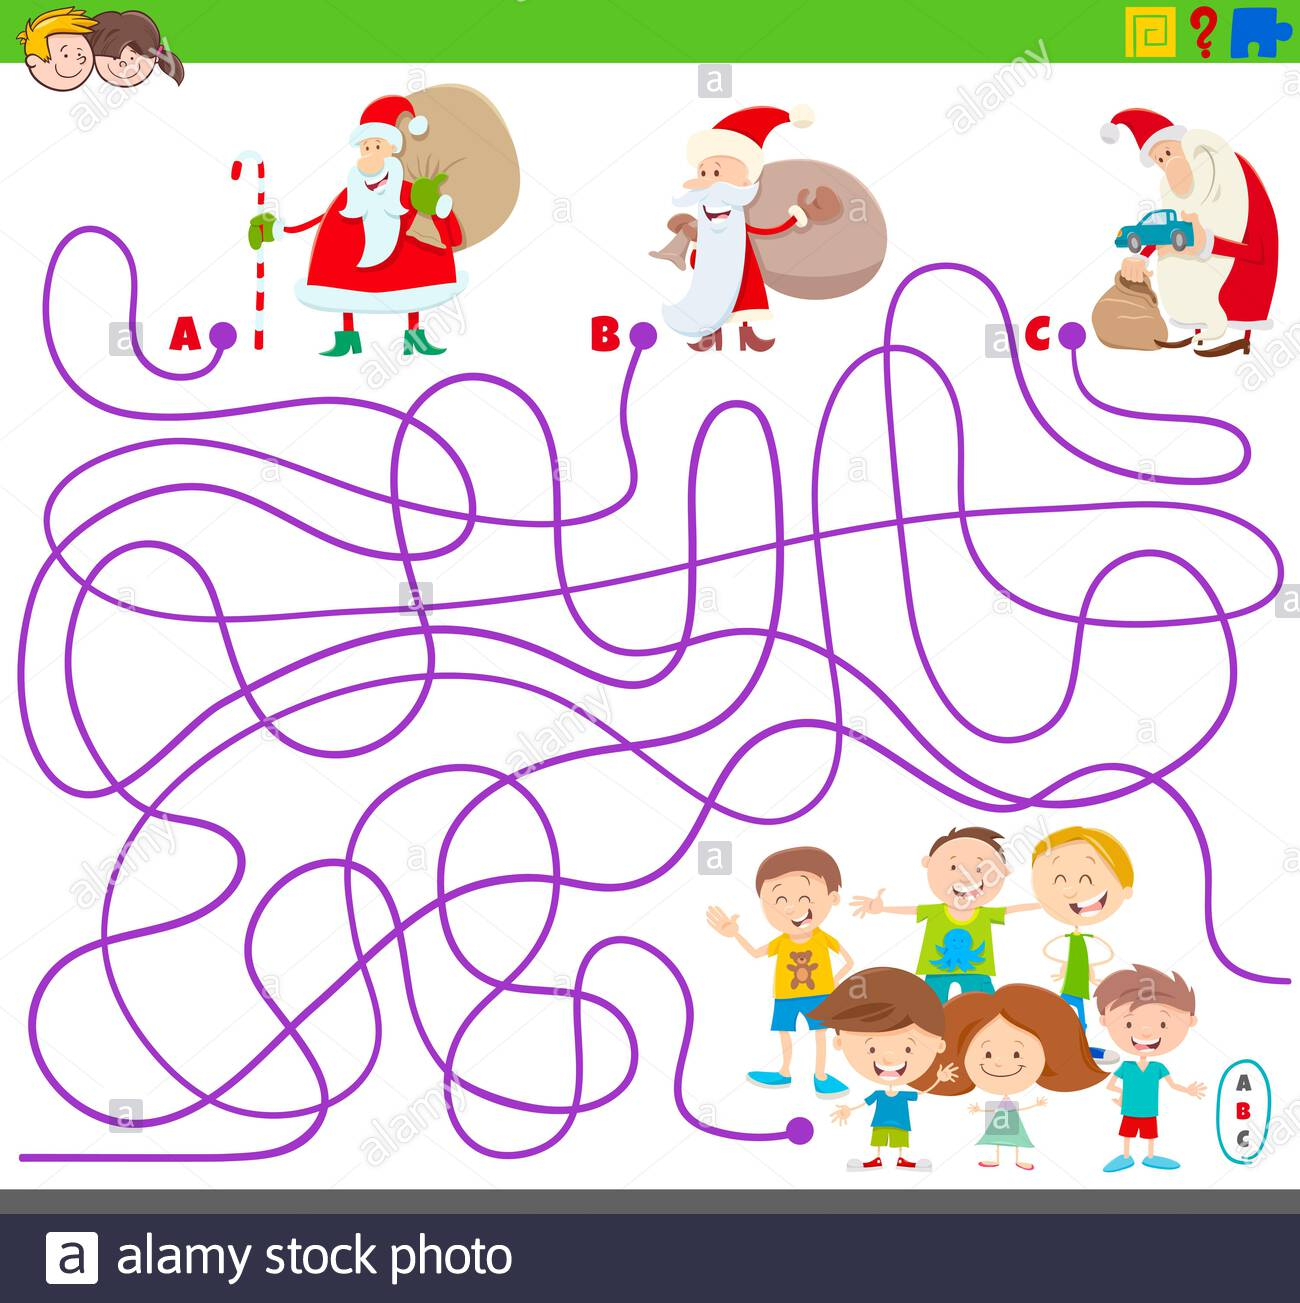 Maze Game With Santa Claus And Children Stock Photo - Alamy